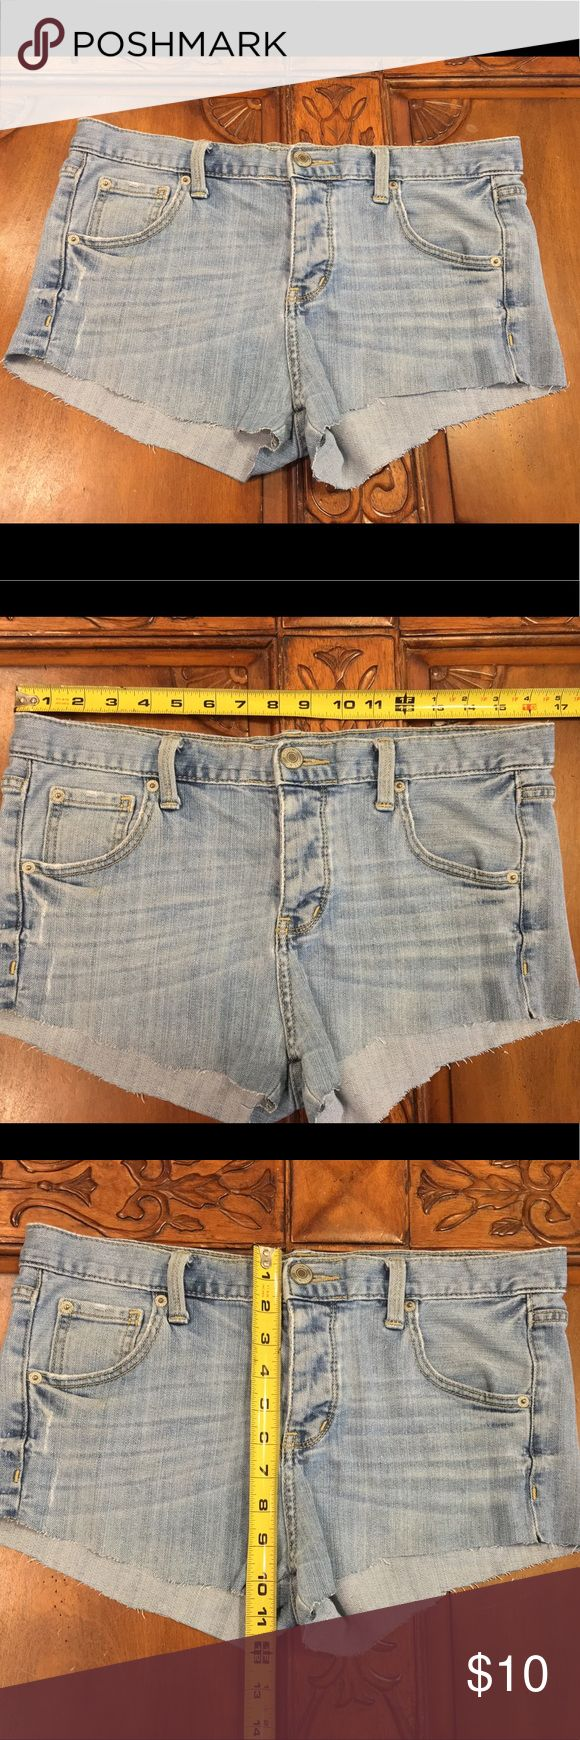 Boyfriend cut Jean shorts Adorable with slight distressing. Looser fit. In excellent condition Mossimo Supply Co Shorts Jean Shorts